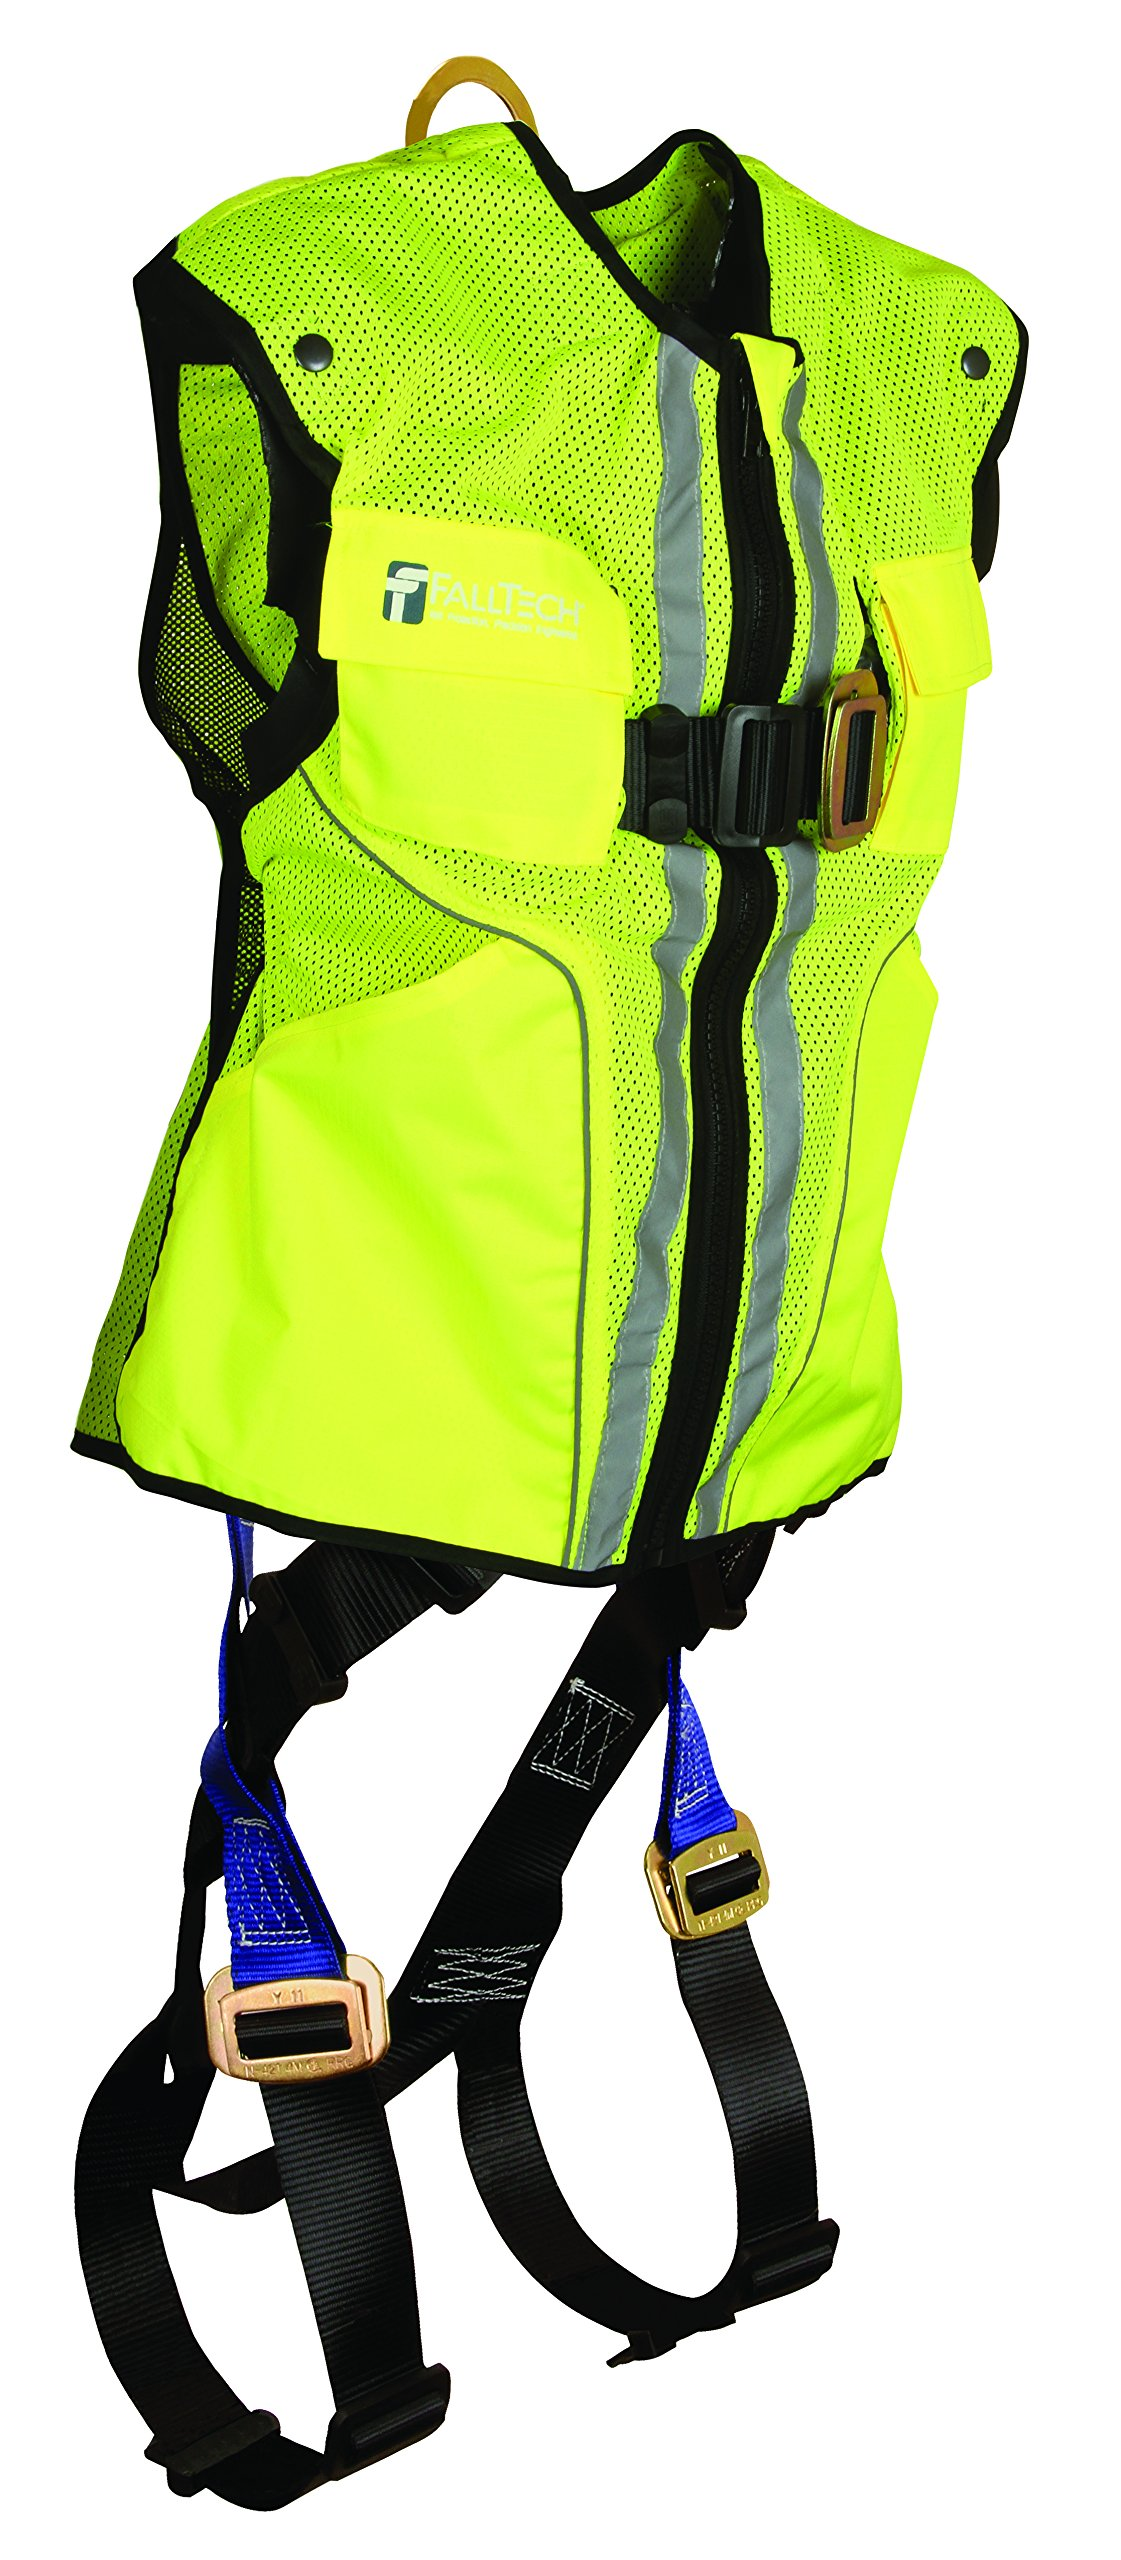 FallTech 7015LXL Hi-Vis Vest Harness, Non-Belted FBH - 1 Back D-Ring, Mating Buckle Legs and Chest, Contractor-Grade Reflective Vest, Lime, Large/X-Large, Lime/Blue by FallTech (Image #1)